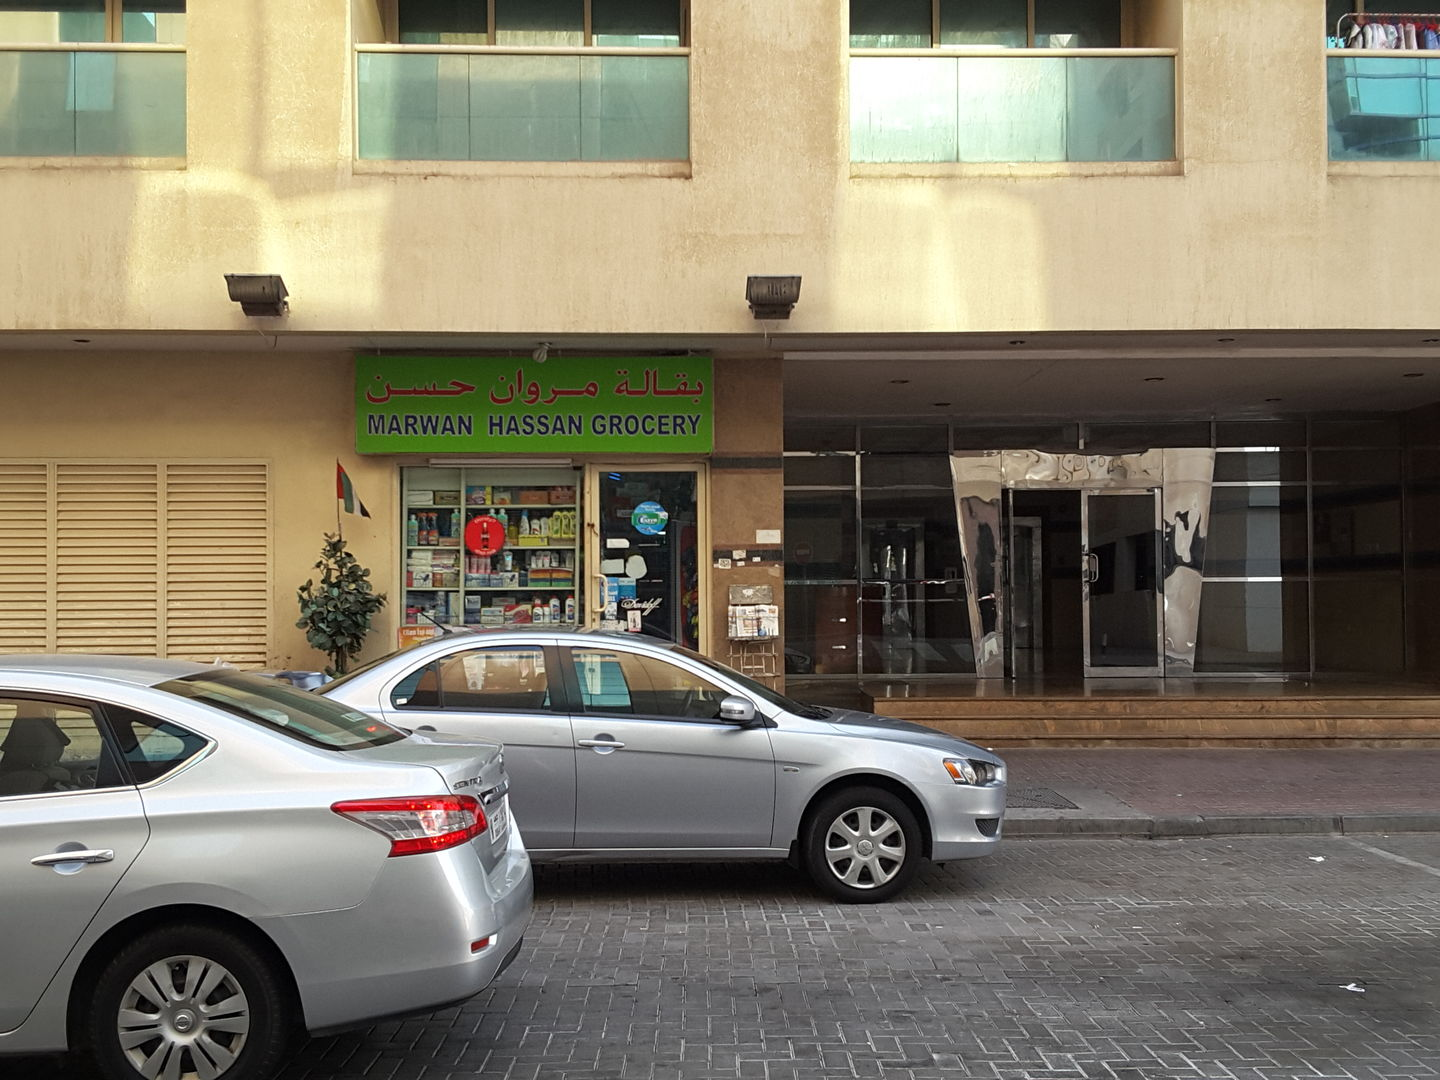 HiDubai-business-marwan-hassan-grocery-shopping-supermarkets-hypermarkets-grocery-stores-oud-metha-dubai-2